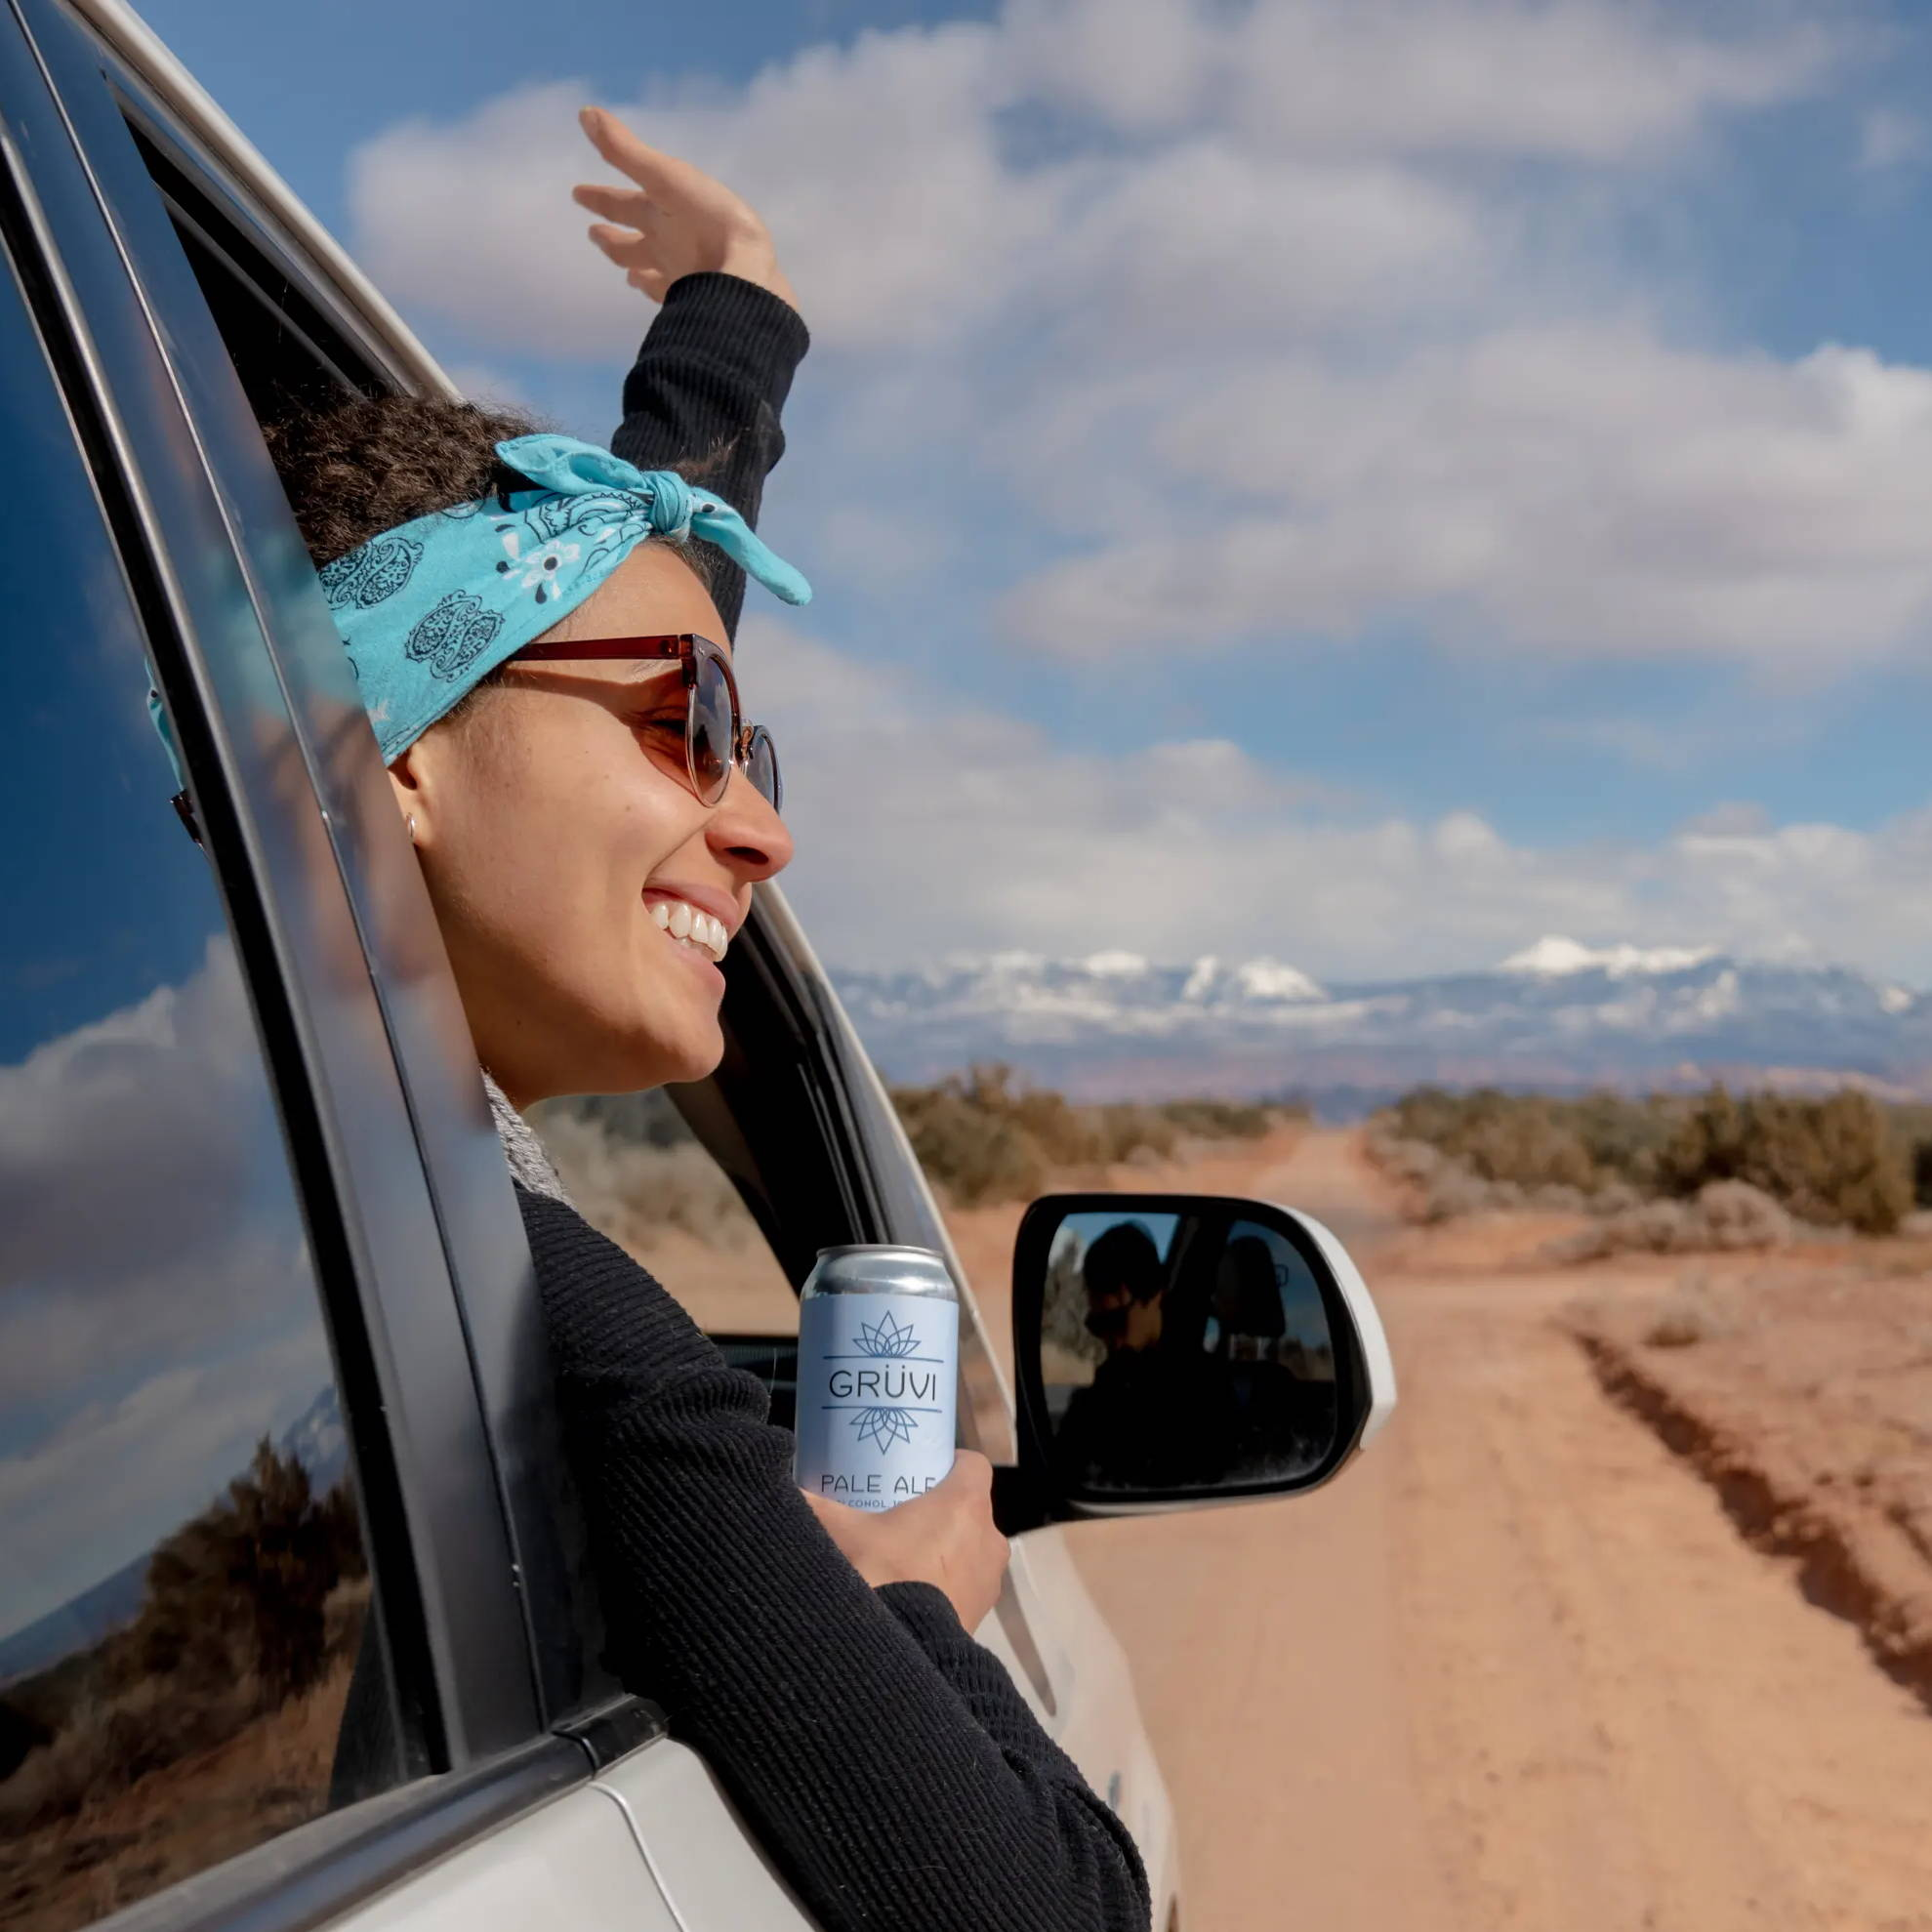 A woman is smiling and leaning out of her car window holding a Grüvi Pale Ale. The car is headed towards the mountains in the background.